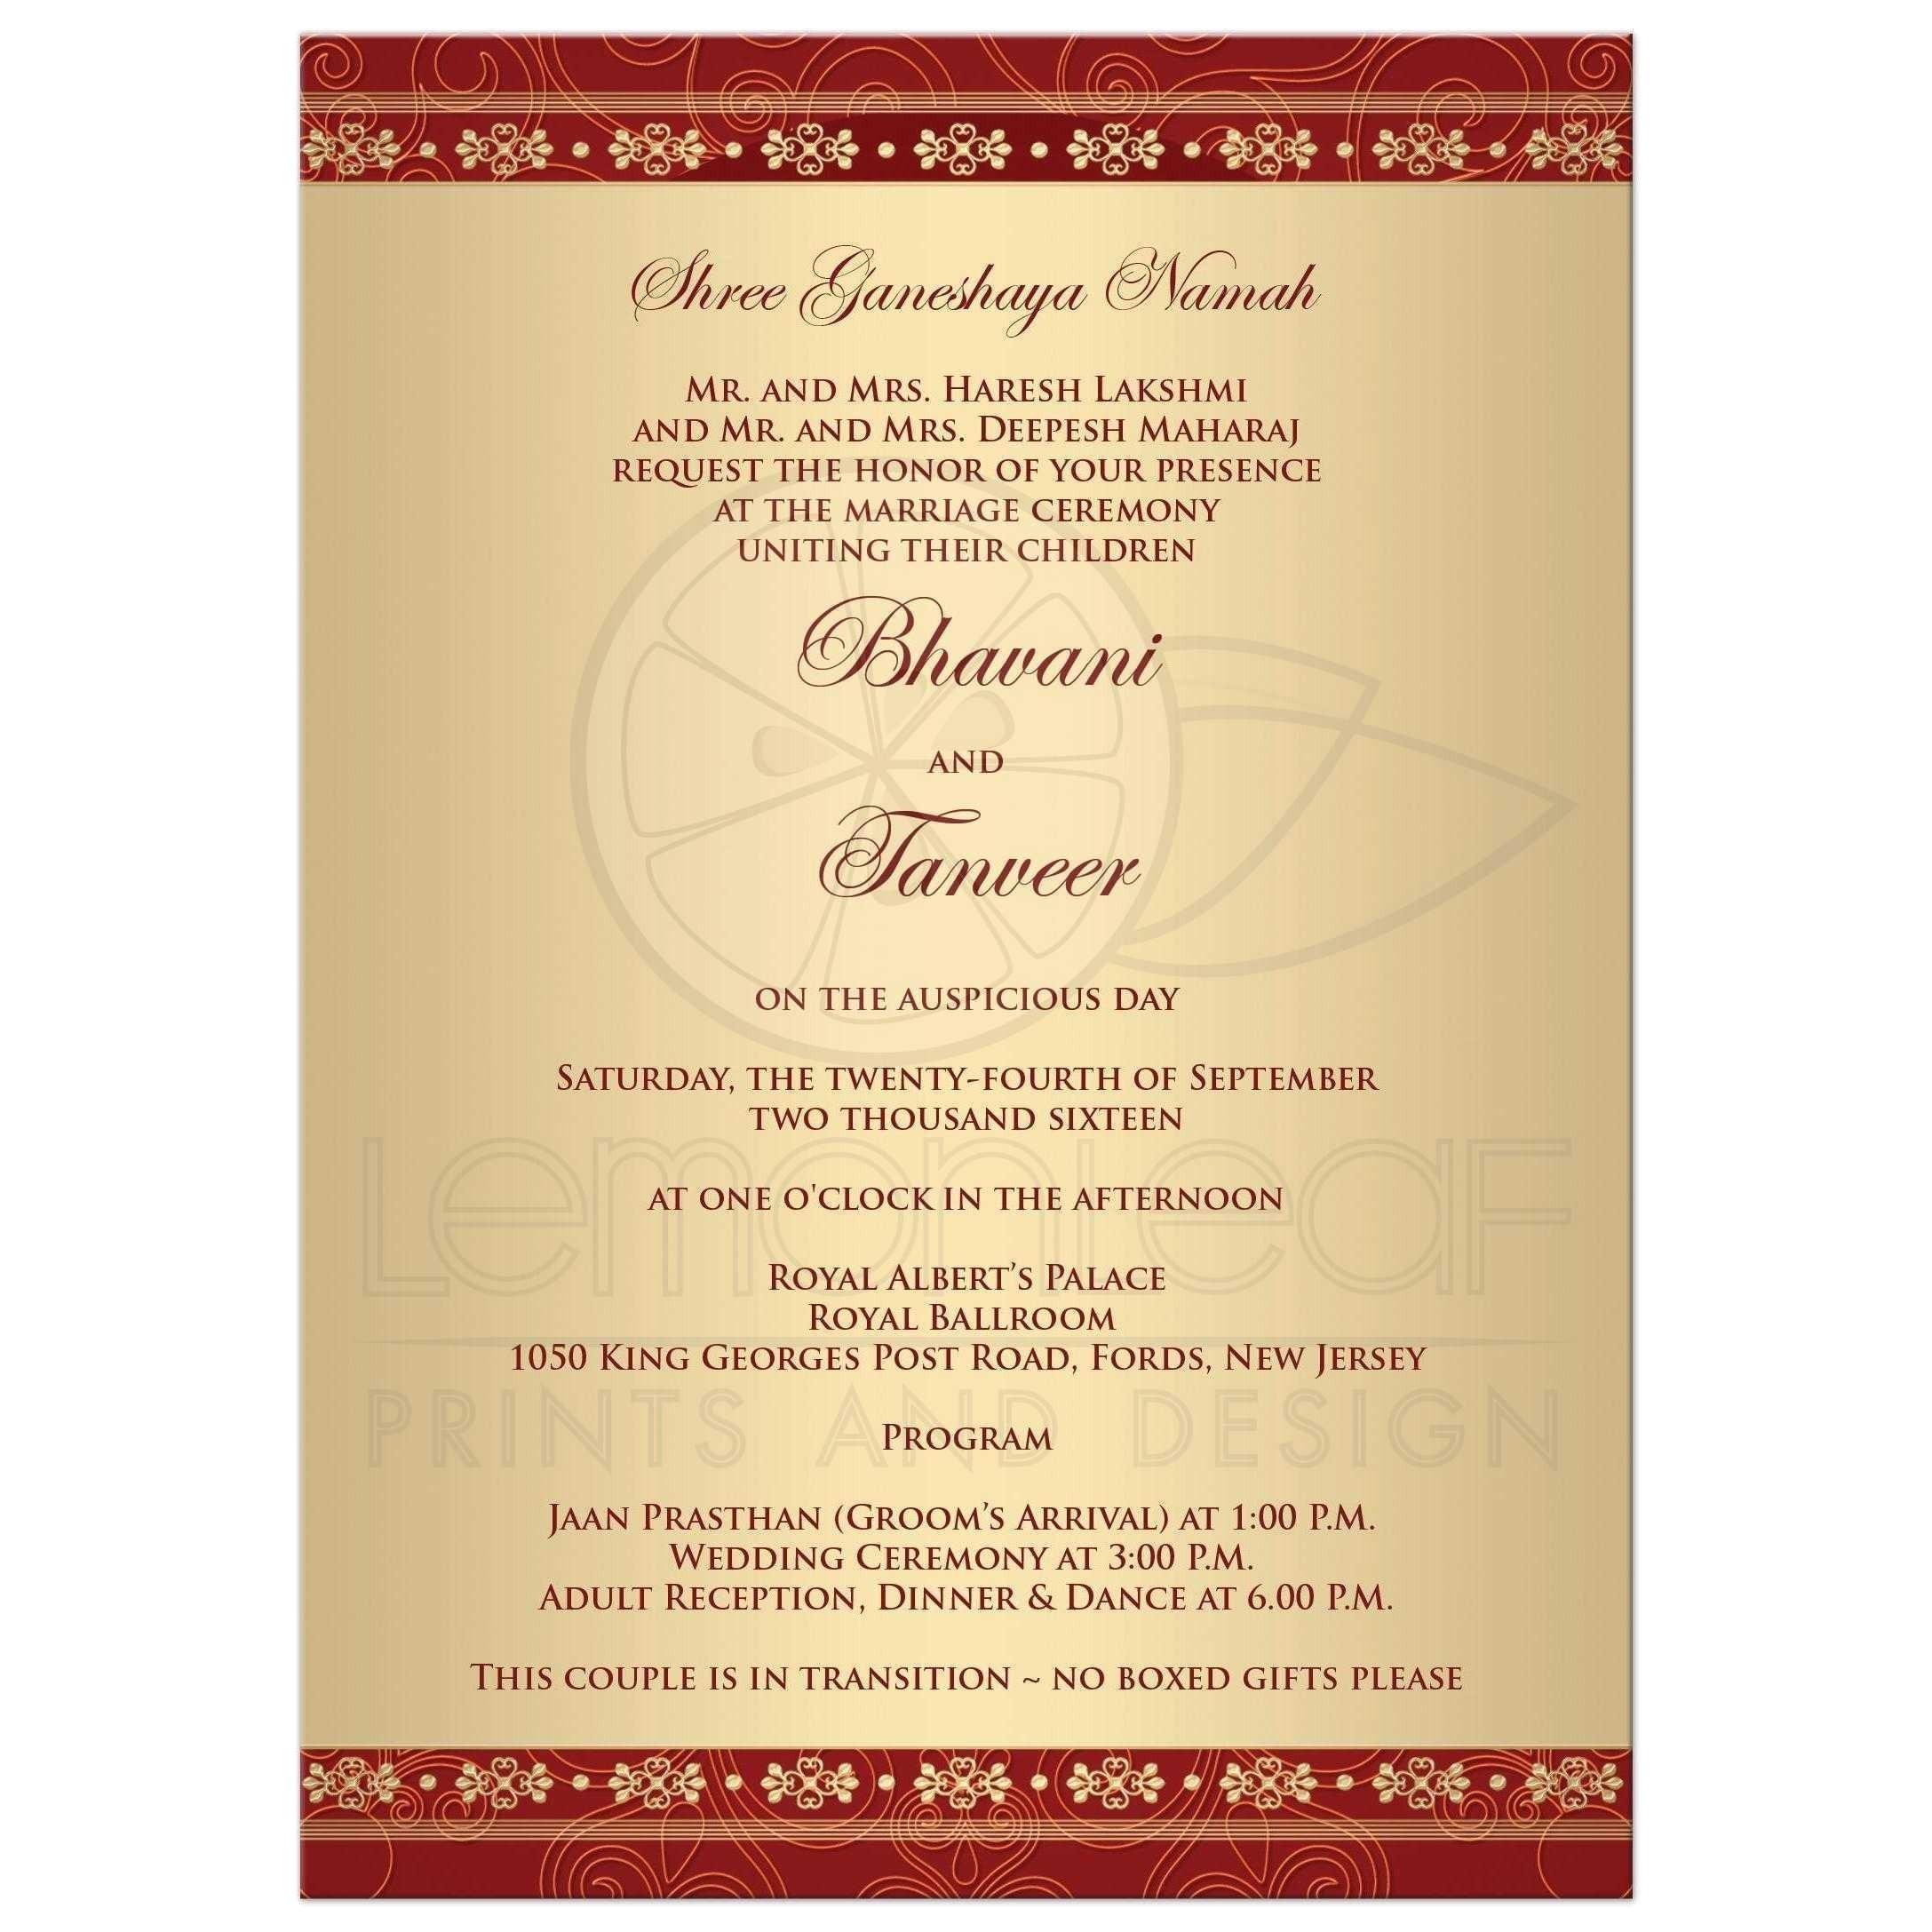 kerala wedding invitation cards matter fresh hindu cool card sample example texts in nigeria pakistan indian template jpg